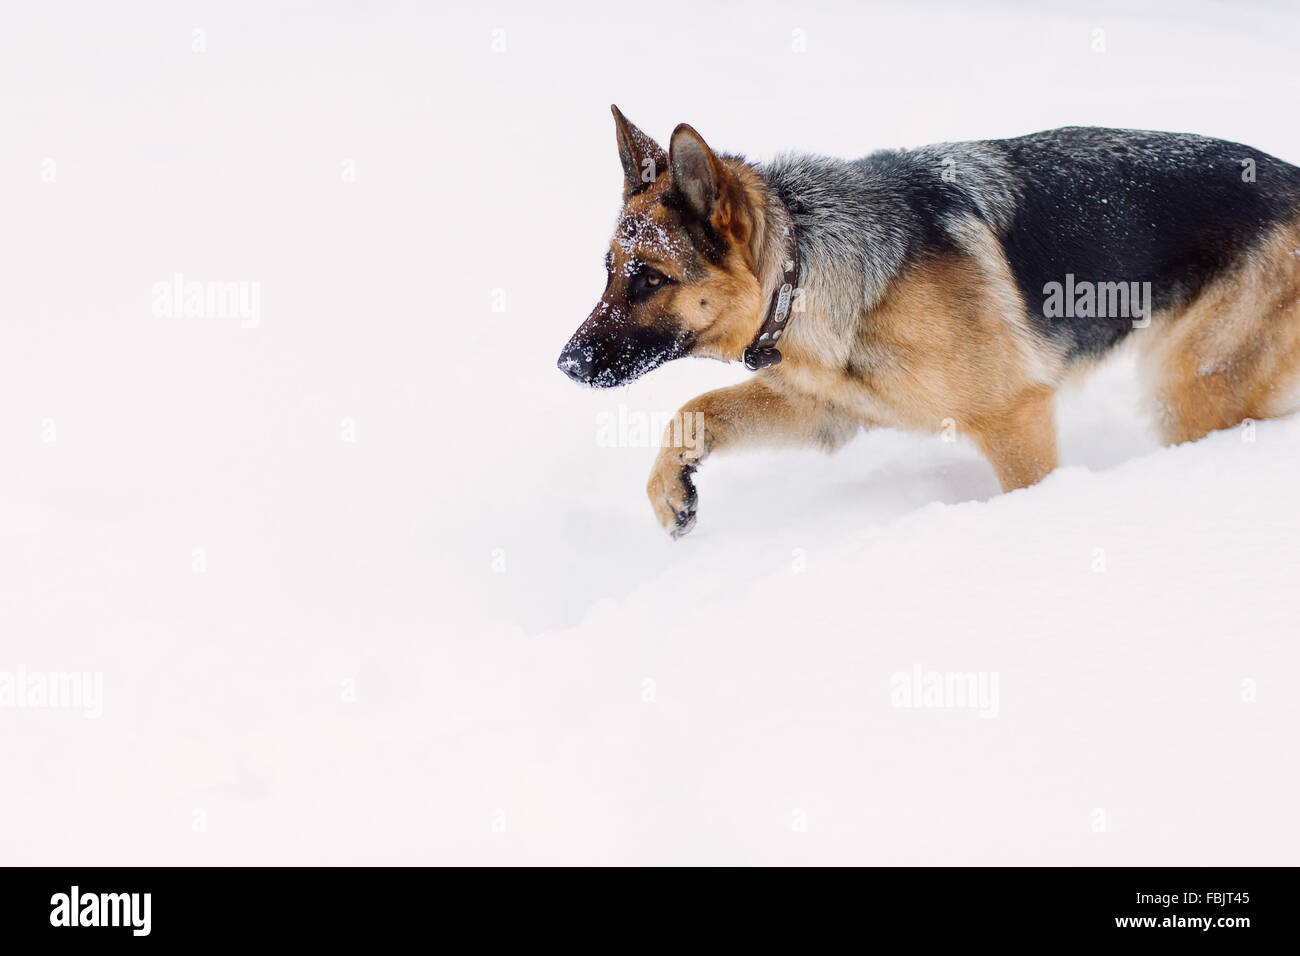 Adult German Shepherd hunting on snow - Stock Image